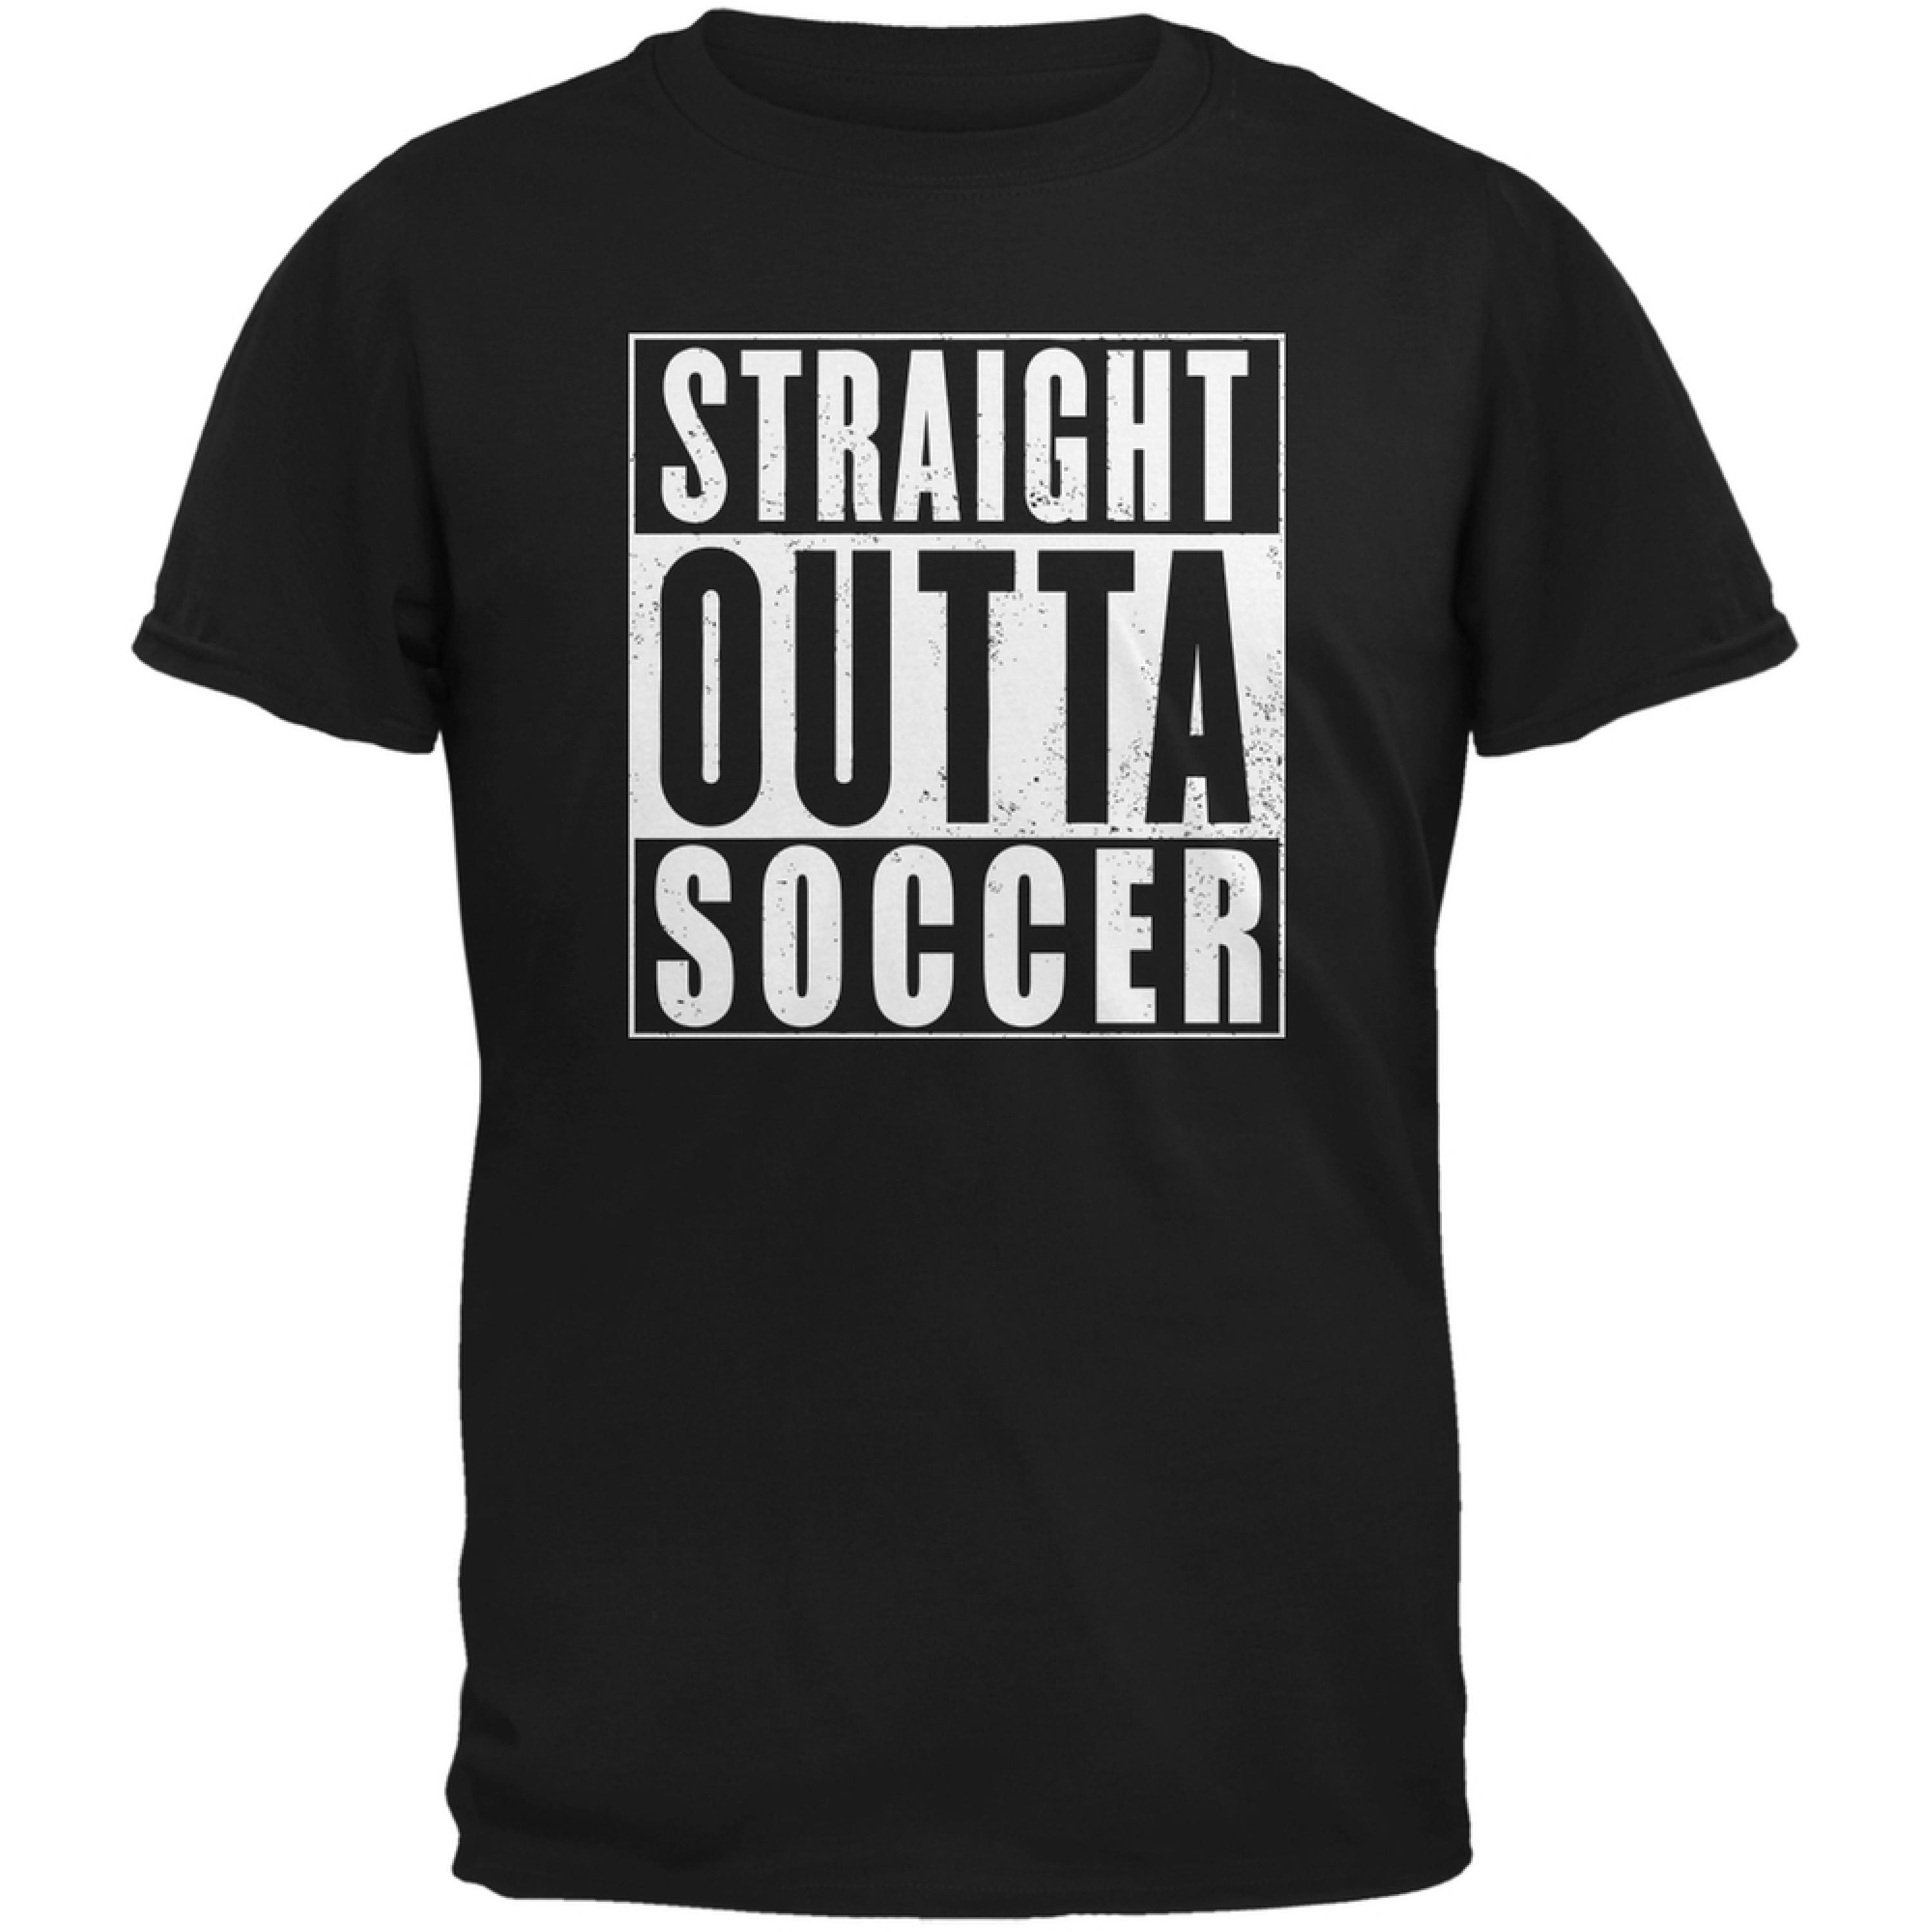 Straight Outta Soccer Black Adult T-Shirt